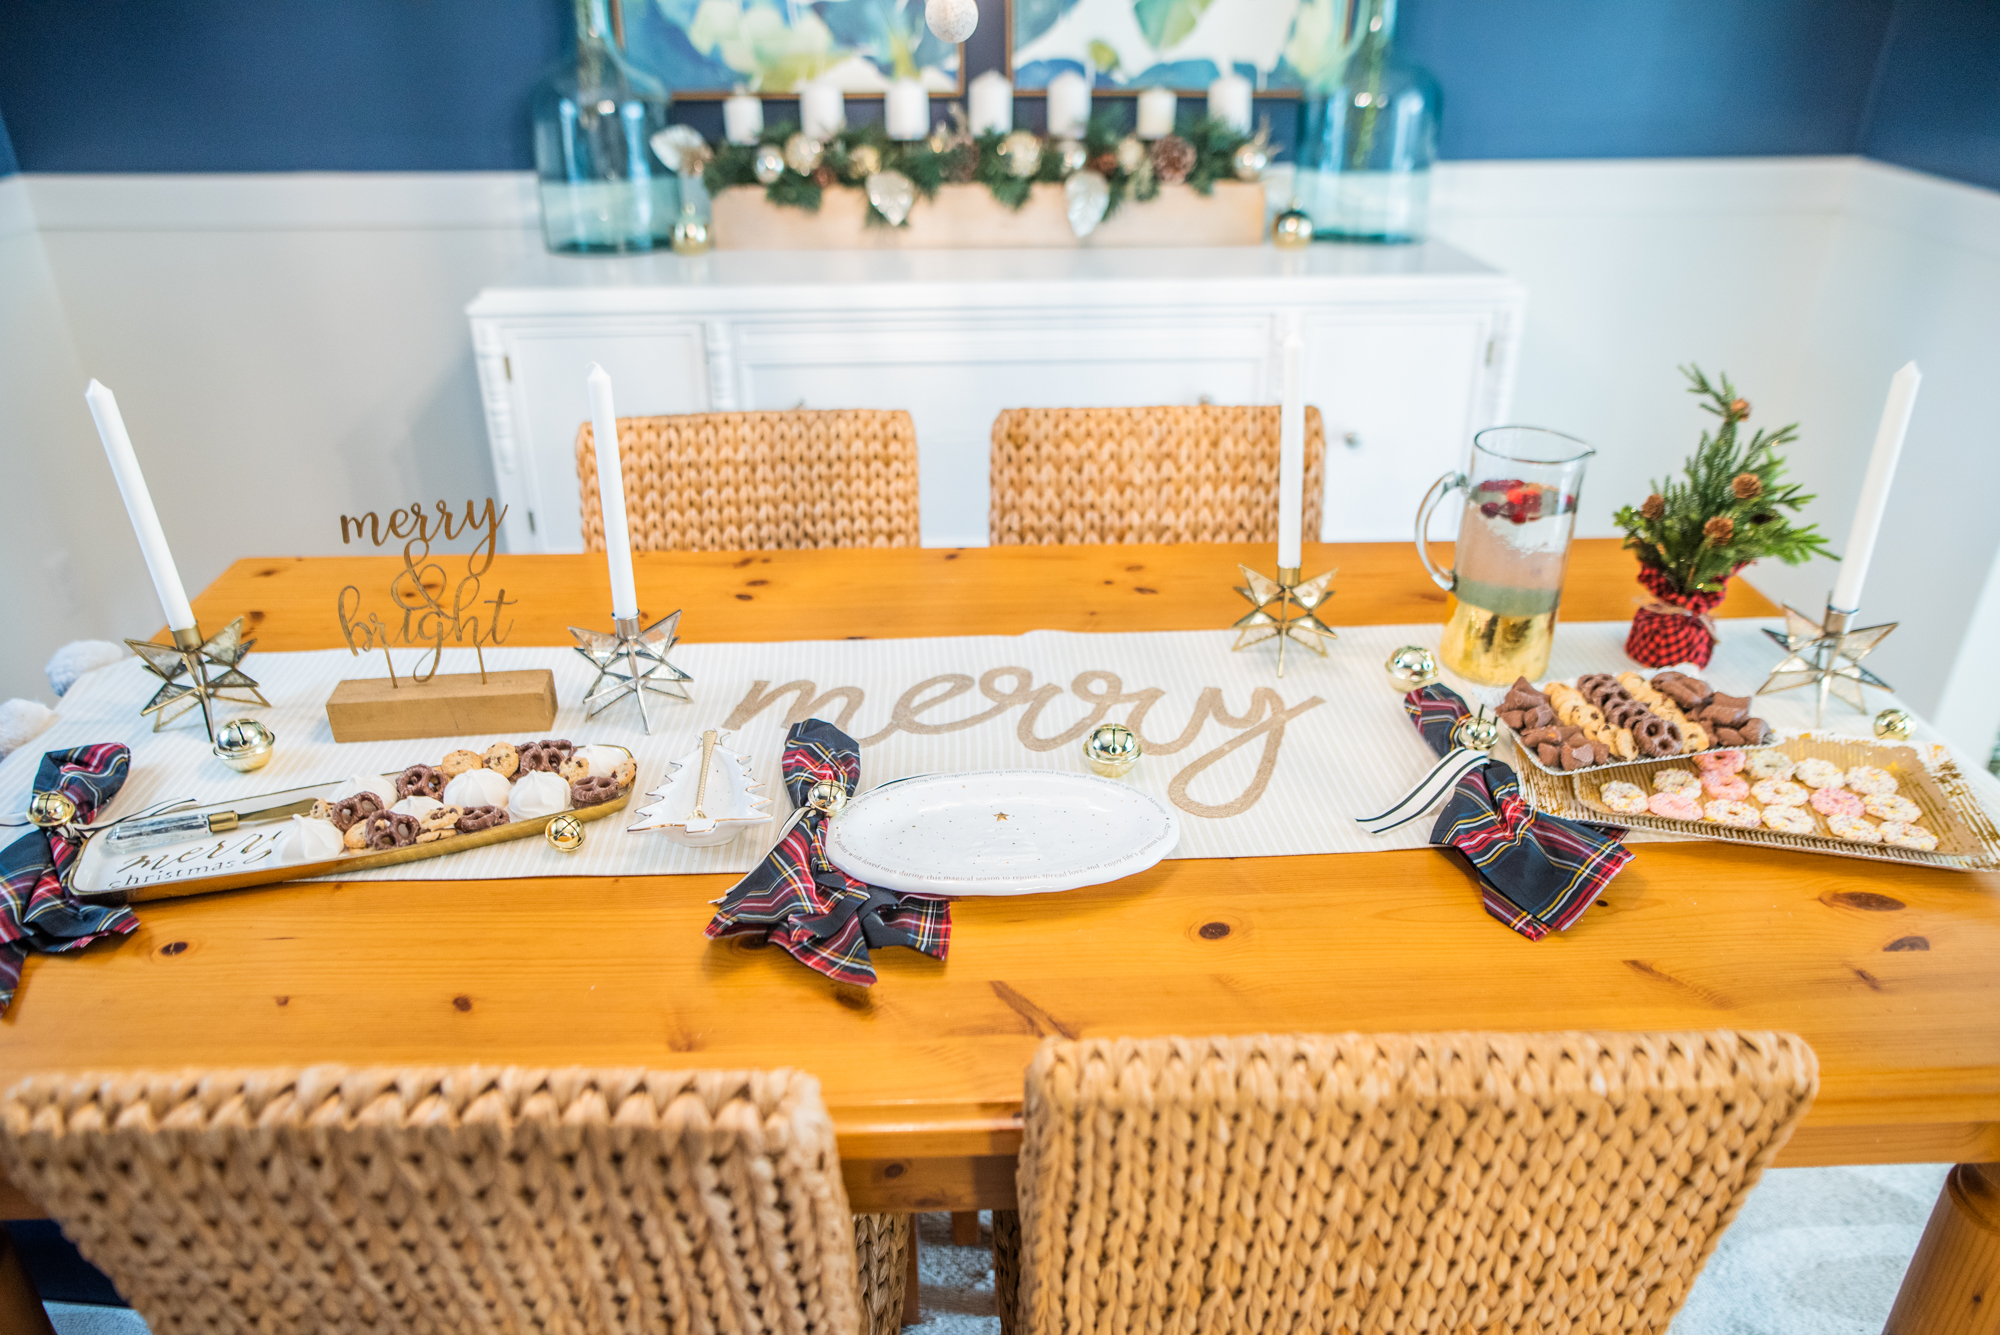 Photo of holiday table for entertaining